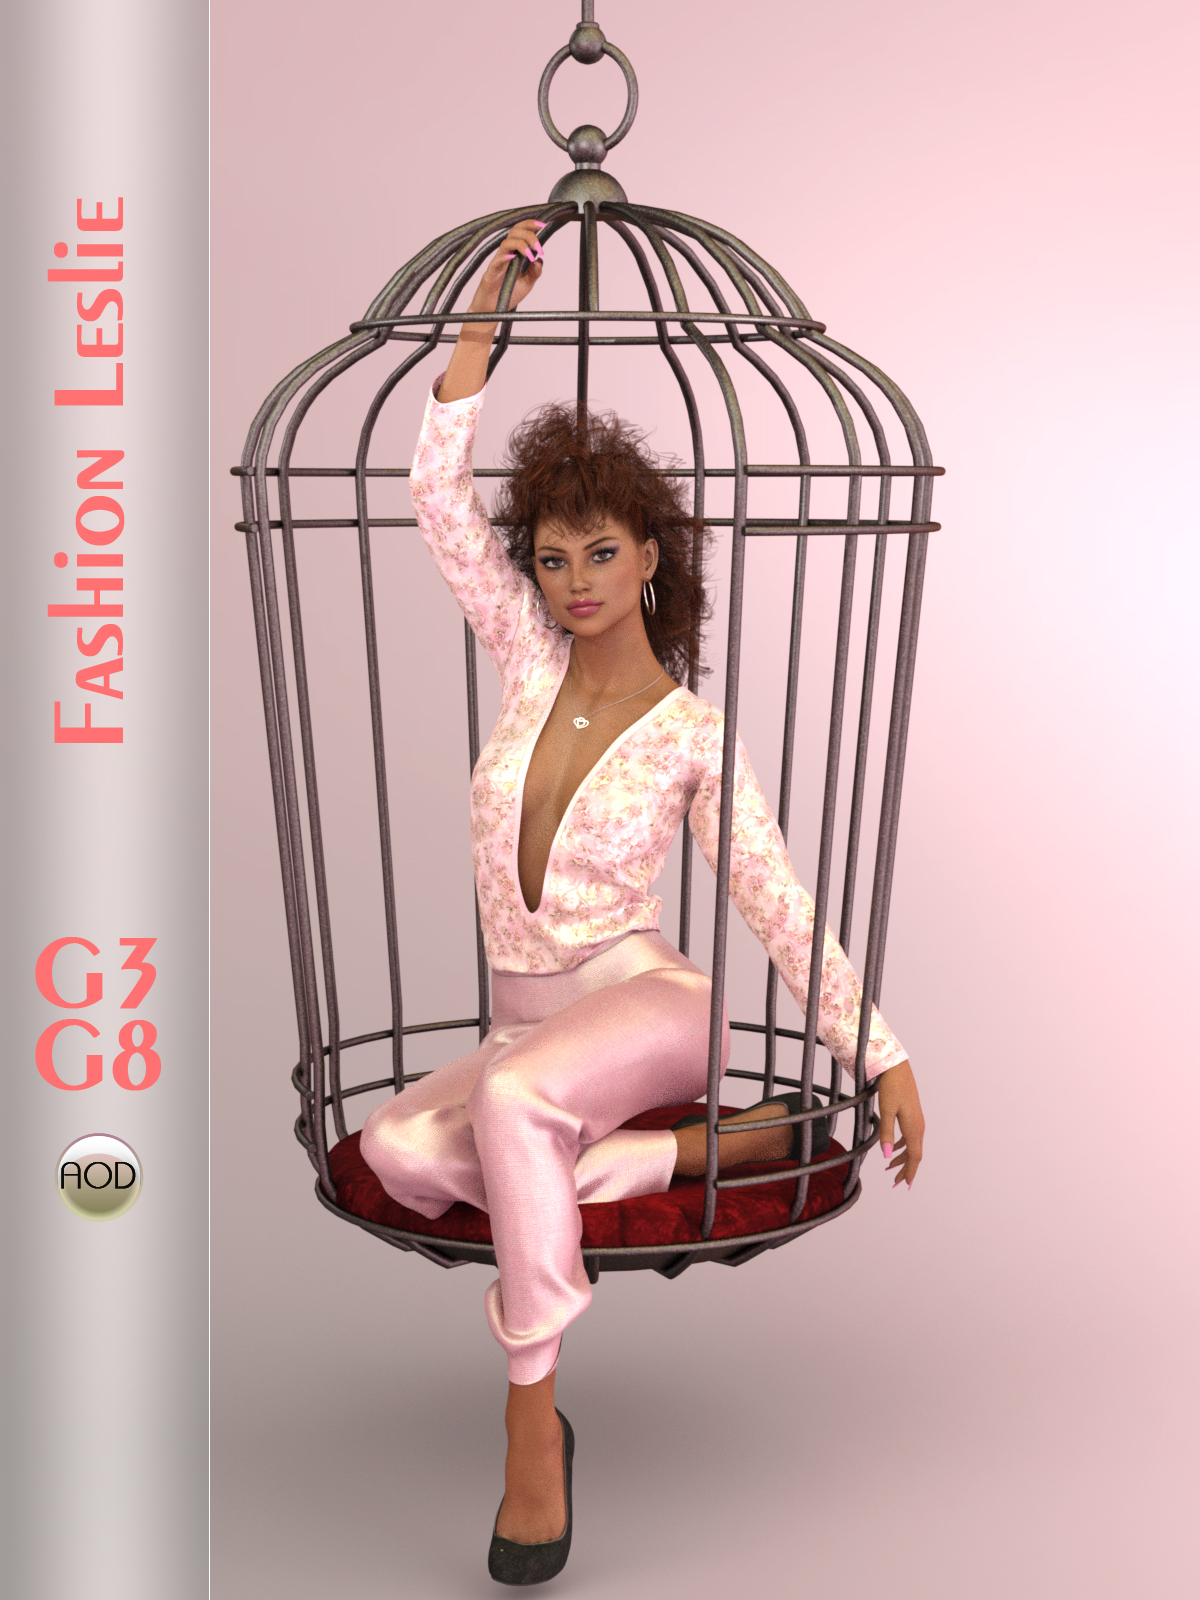 Fashion: Leslie G3/G8